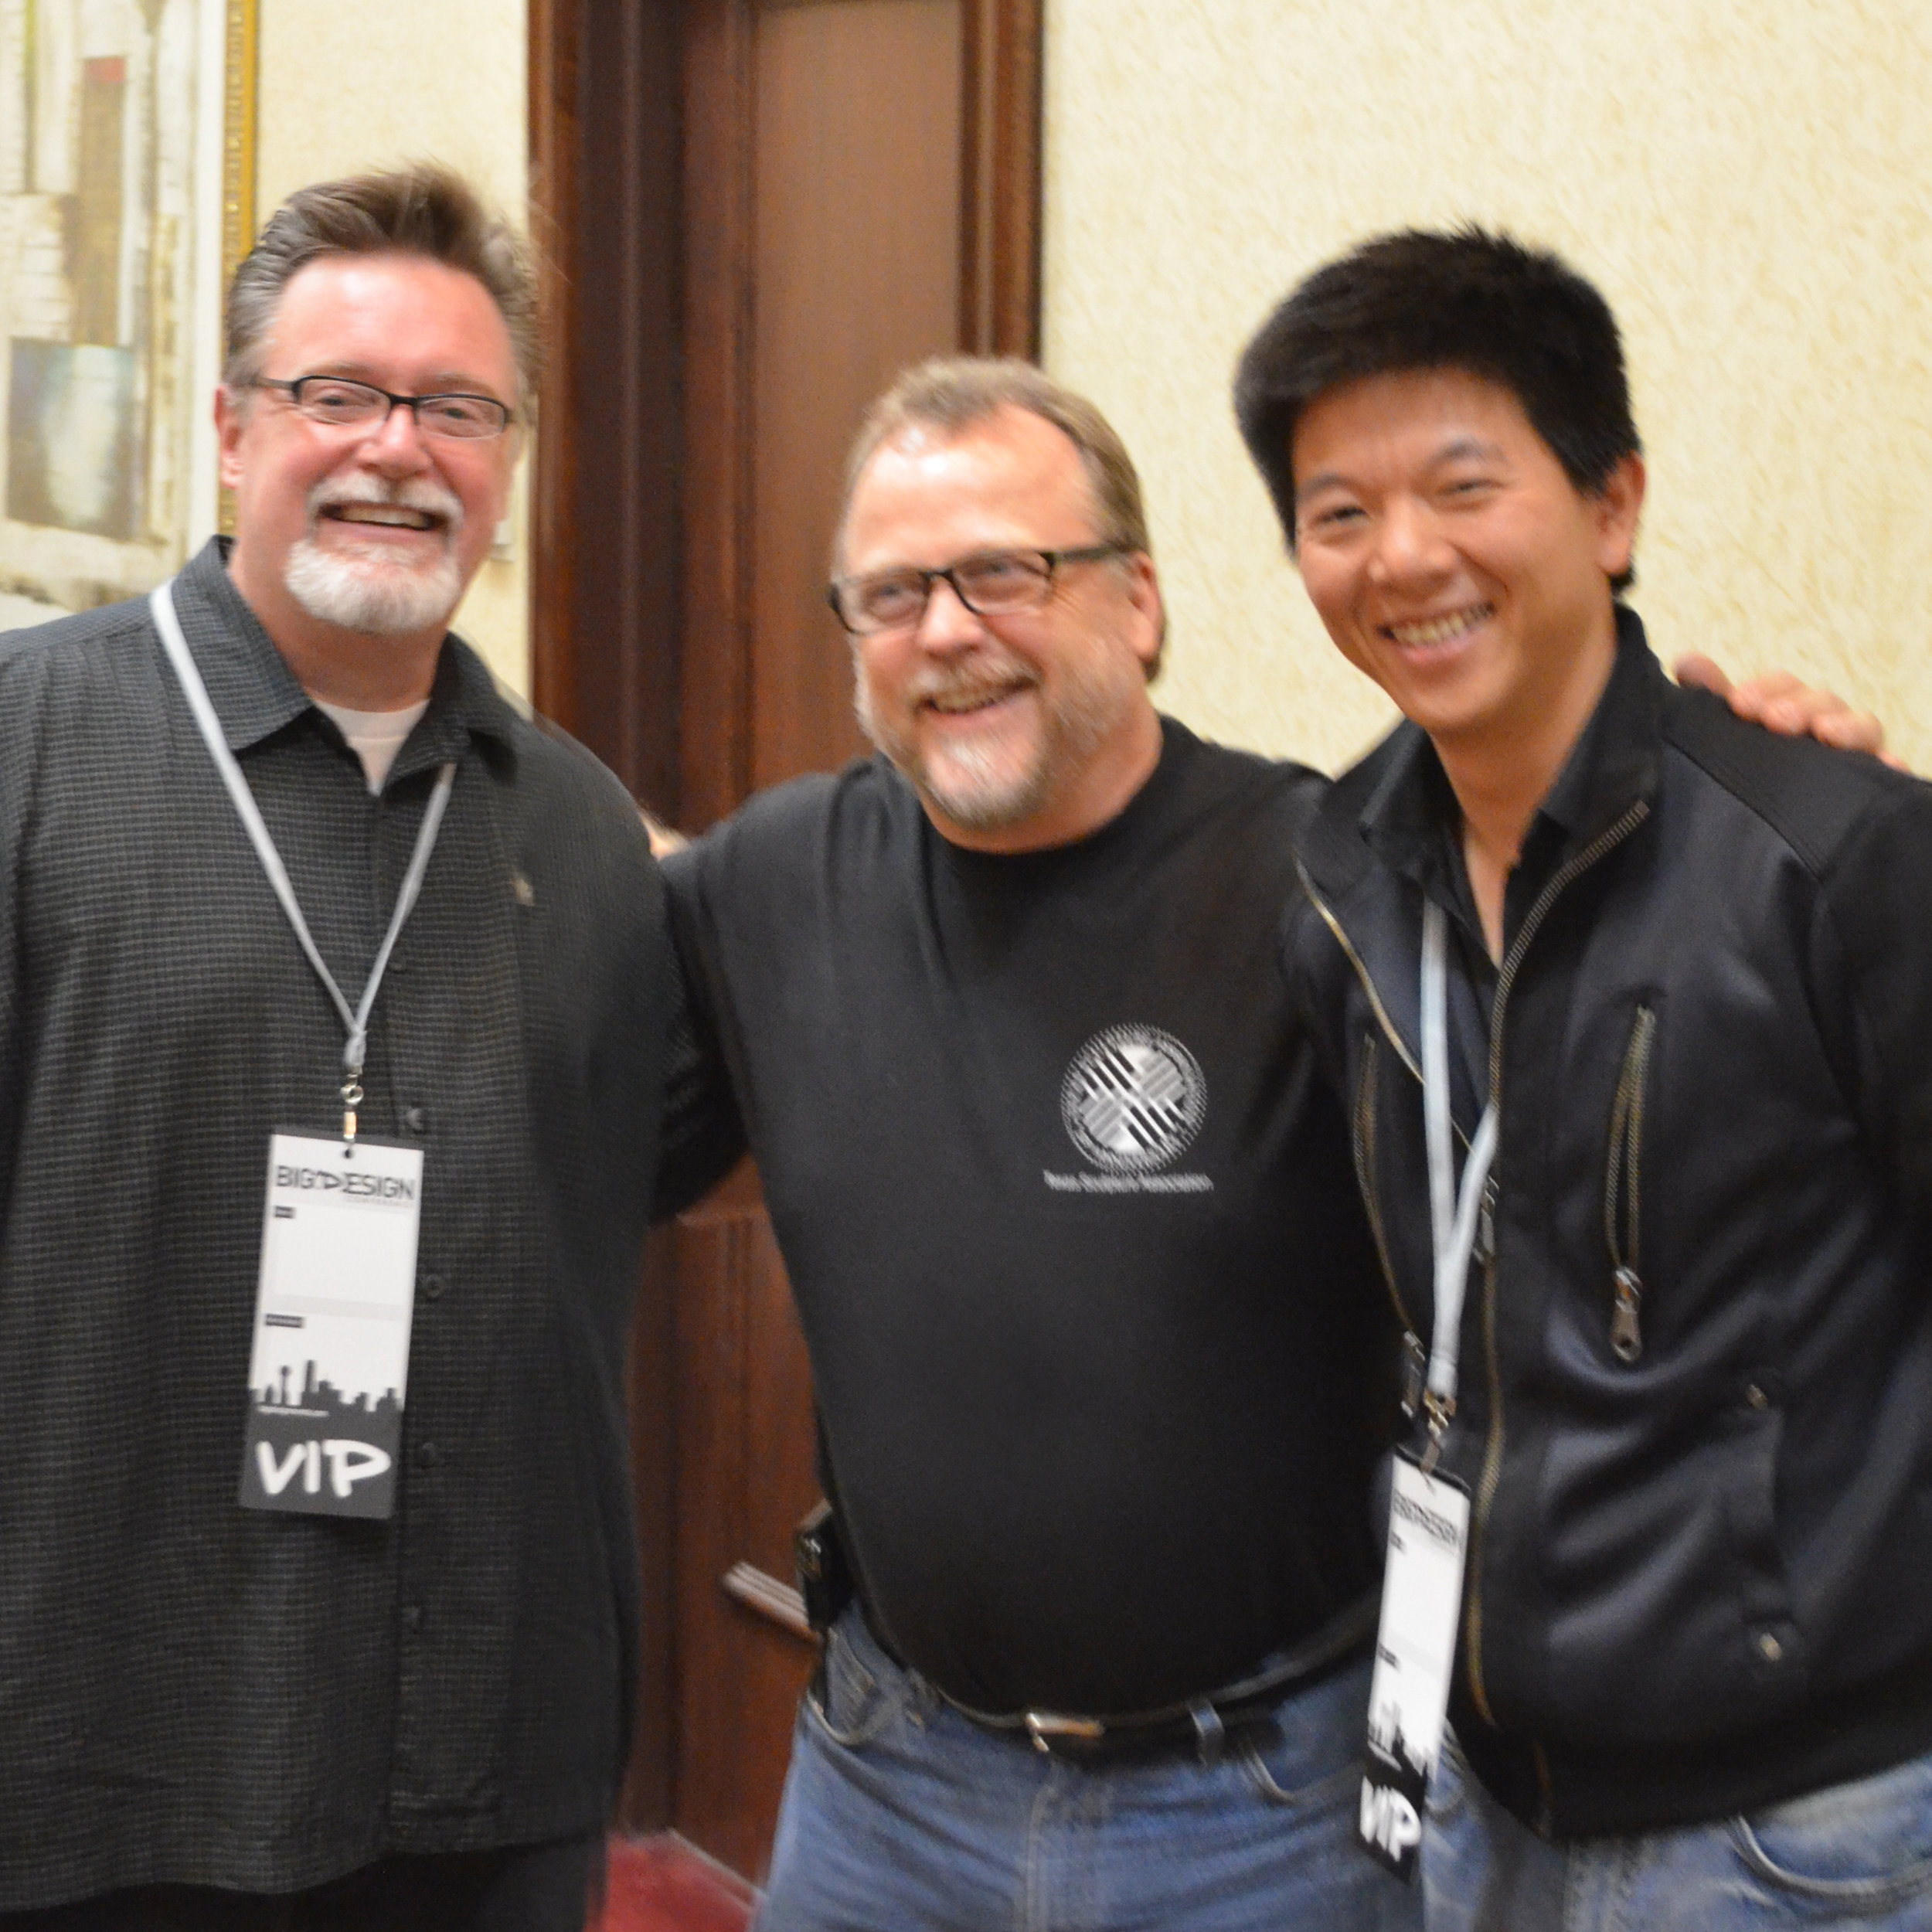 Roger and the Producers - Roger standing proudly with two great producers. On my right, Keith Alcorn, creator of  Jimmy Neutron , Boy Genius, on my left, I love that show. Yu Hsiu Yang, producer of the new inspiring film, Design & Thinking. Design & Thinking is a great film about my profession and a fellow Kickstarter funded project. The BIG(D)ESIGN 2012 Multimedia and Film Track was a big hit! And of course, i am sporting my Texas Sculpture Association t shirt.